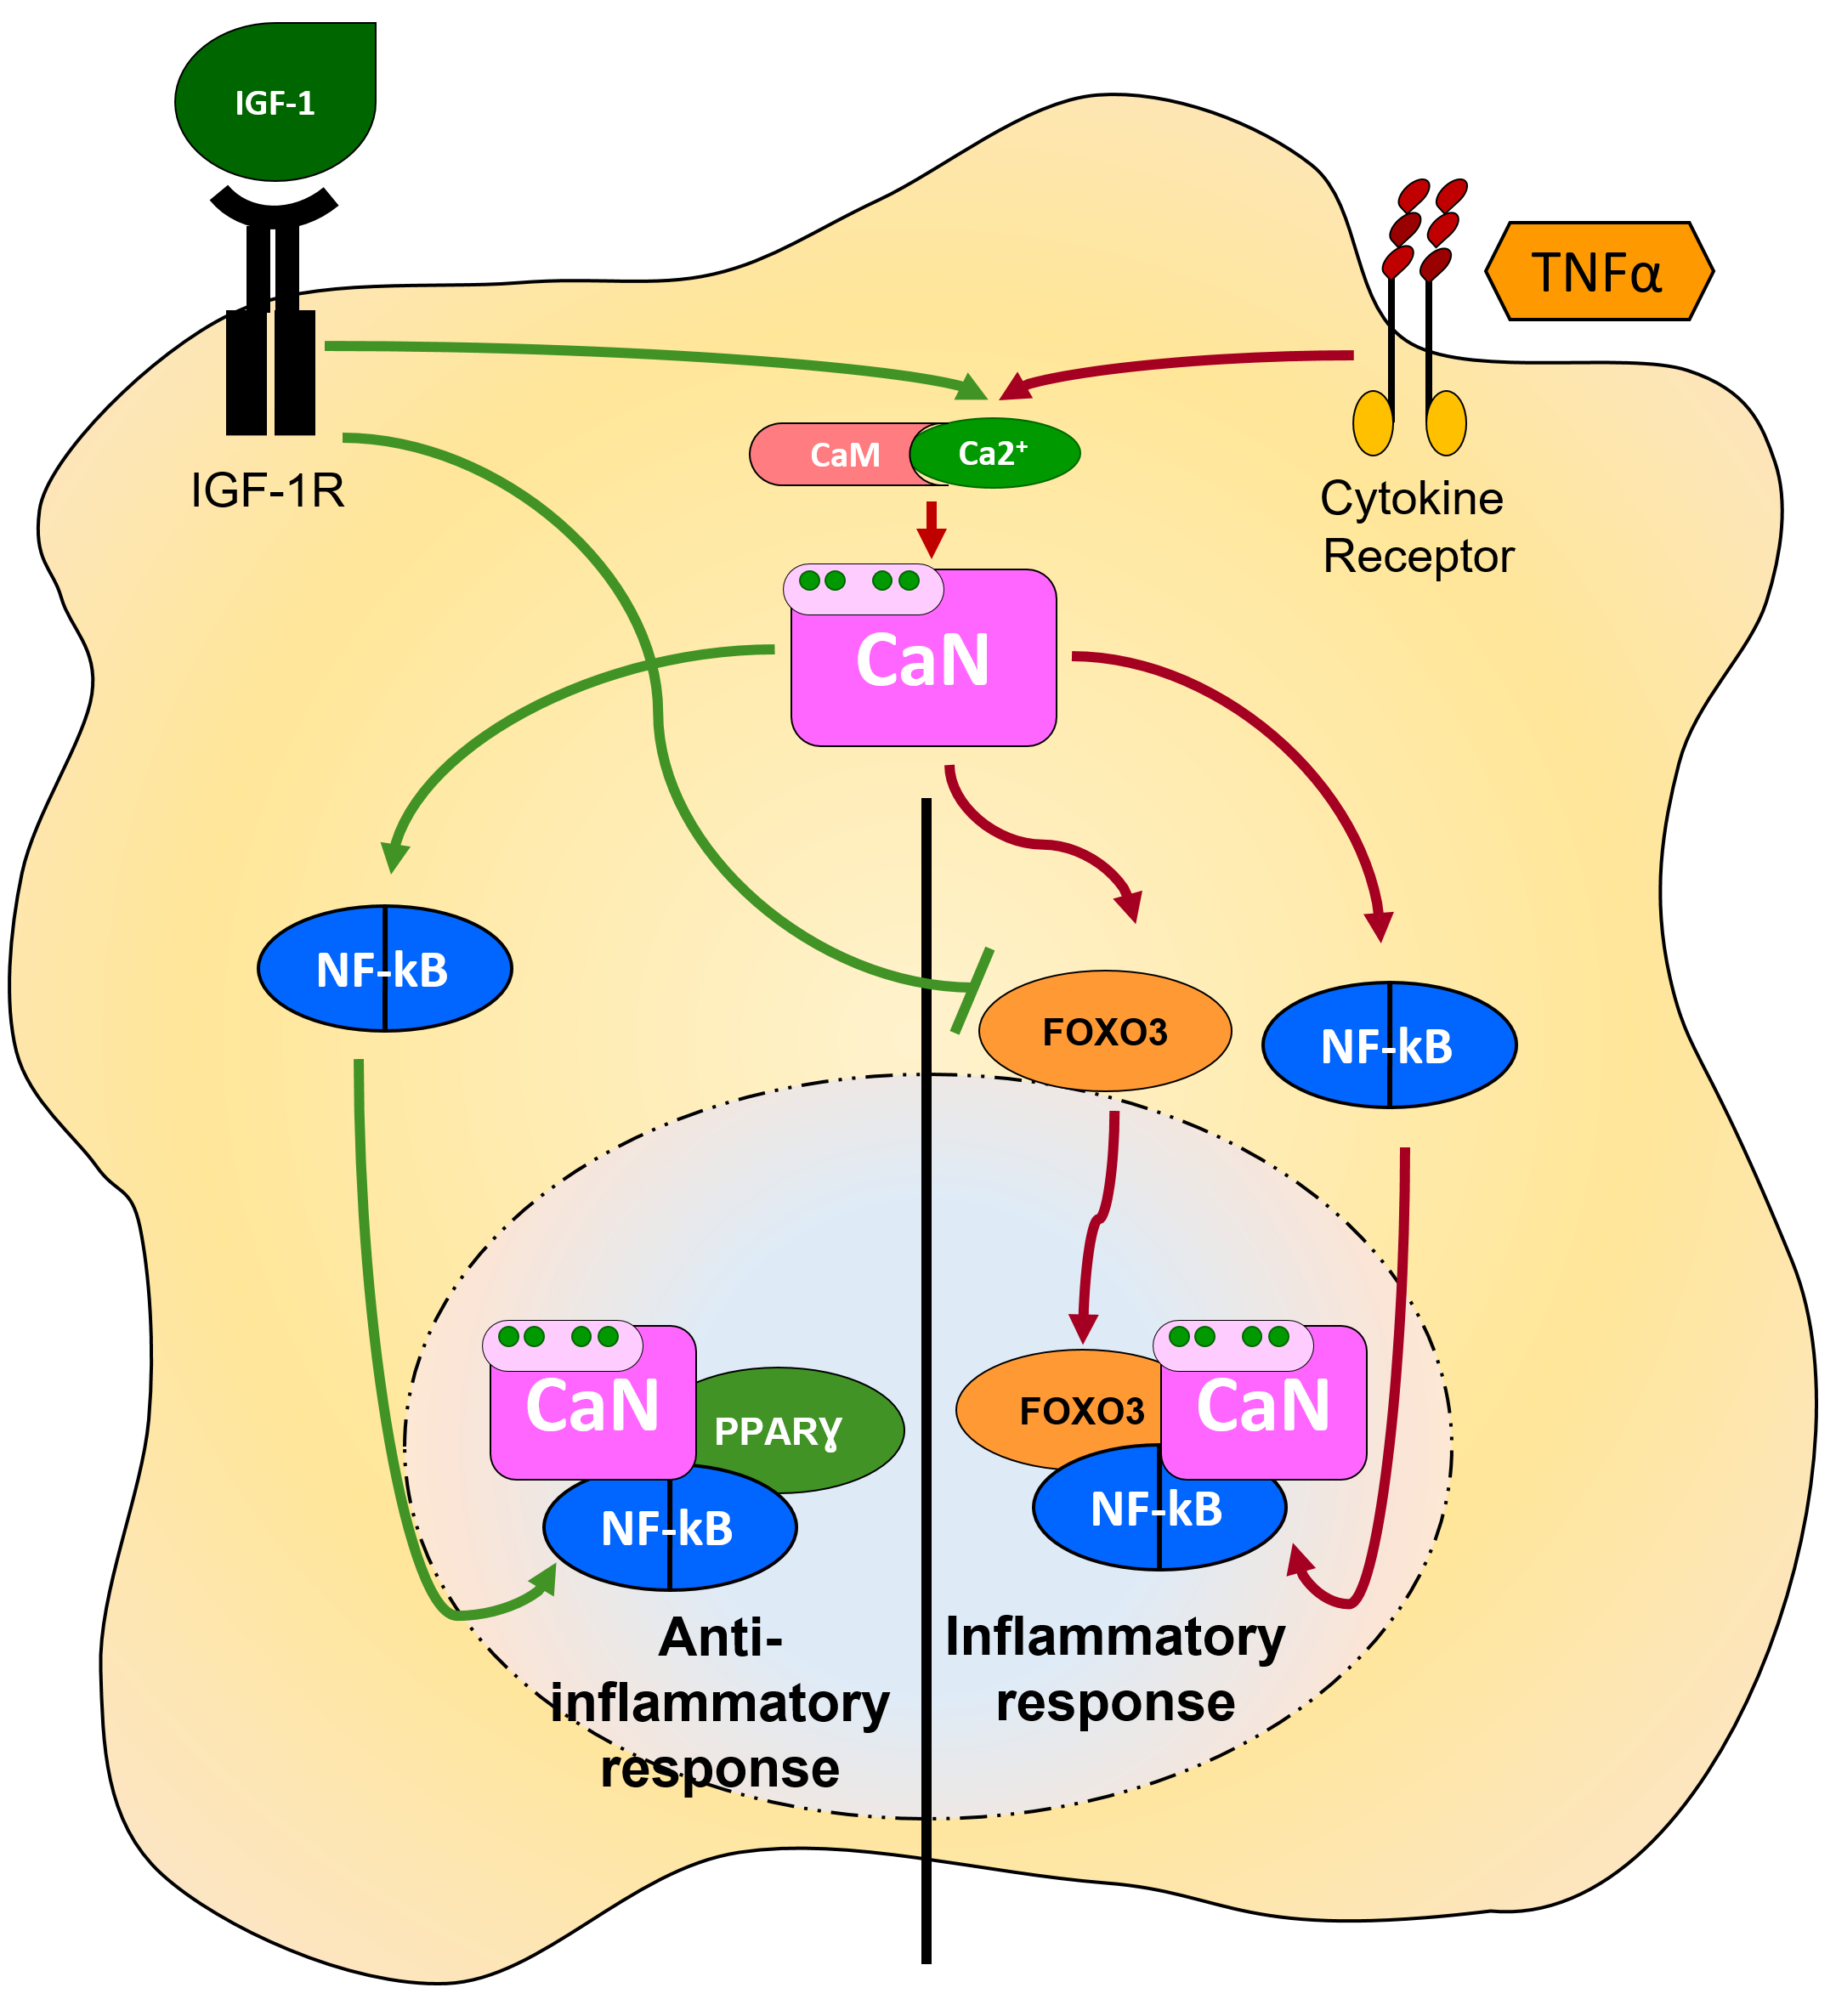 Figure 3. Activation vs inhibition of NF-kB-mediated signalling: role of CaN interacting proteins Upon stimulation with TNFα, CaN recruits and dephosphorylates FOXO3 to interact with and activate NF-kB, which promotes transcription of inflammatory genes. When co-stimulated with IGF-I, CaN recruits PPARγ to displace FOXO3 from the CaN/FOXO3/NF-kB complex generating the CaN/PPARγ/NF-kB complex, thus precluding NF-kB transcriptional activity (Fernandez et al., 2012)